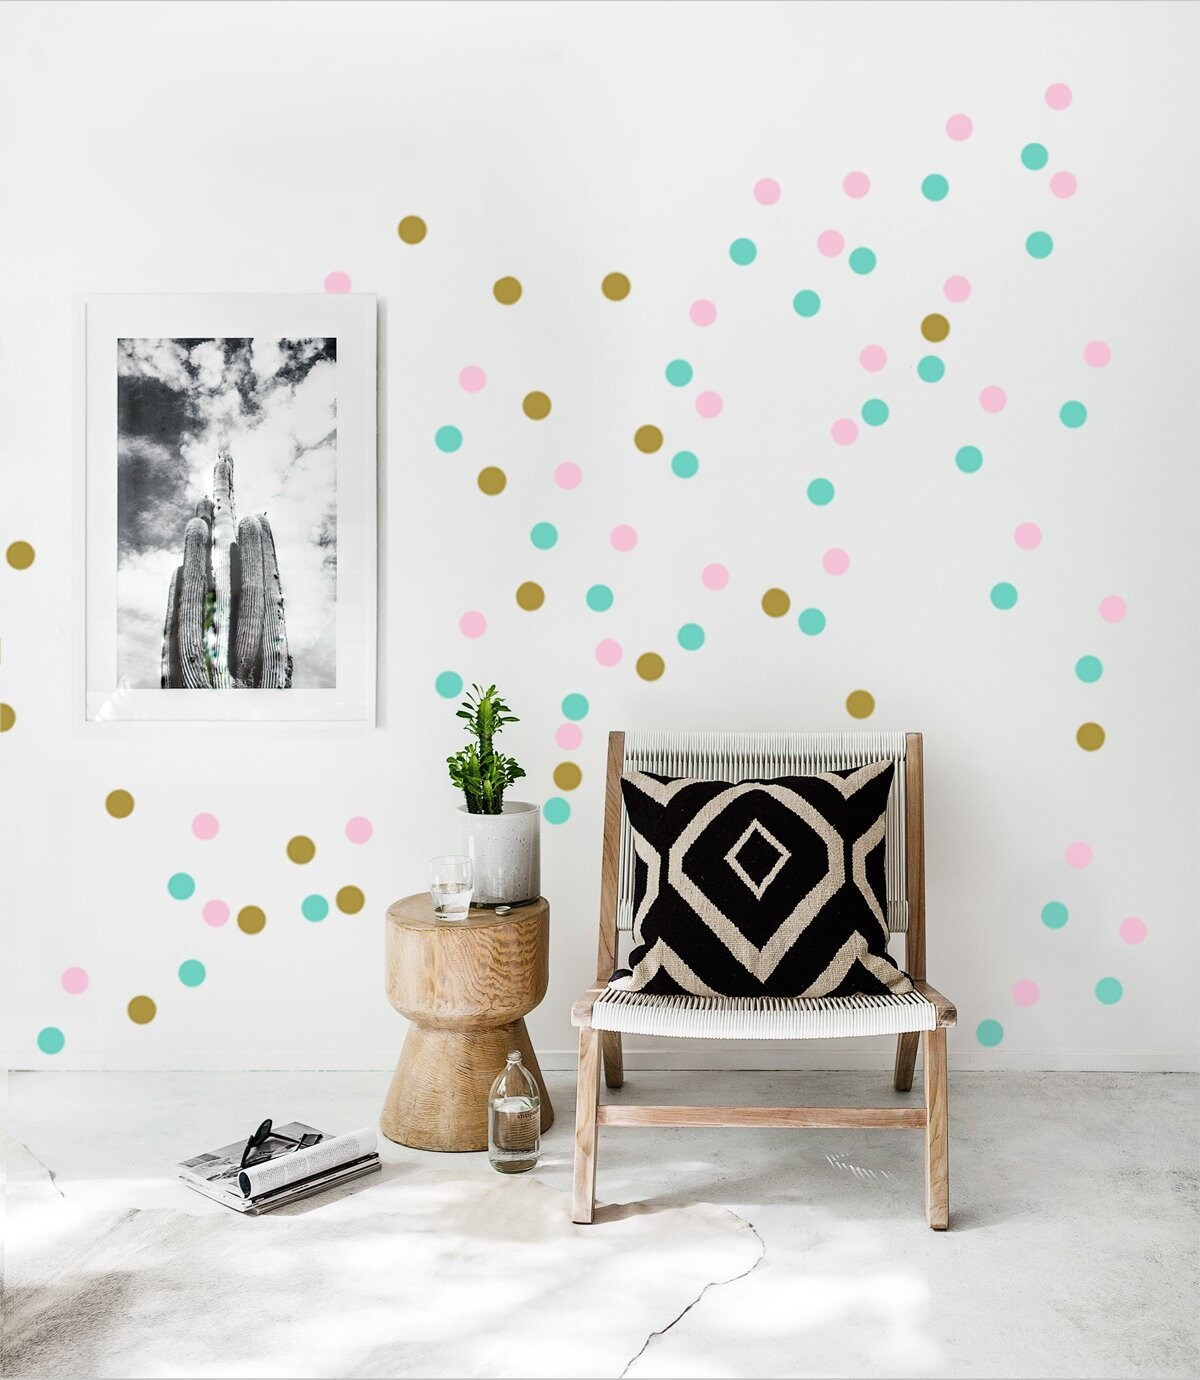 Wandfarbe Türkis Glänzend Dot Wall Decals 3 Colored 2 Polka Dots Wall Stickers Set Of 60 90 Or 120 Multicolored Confetti Dots Kidsroom Decals Round Colorful